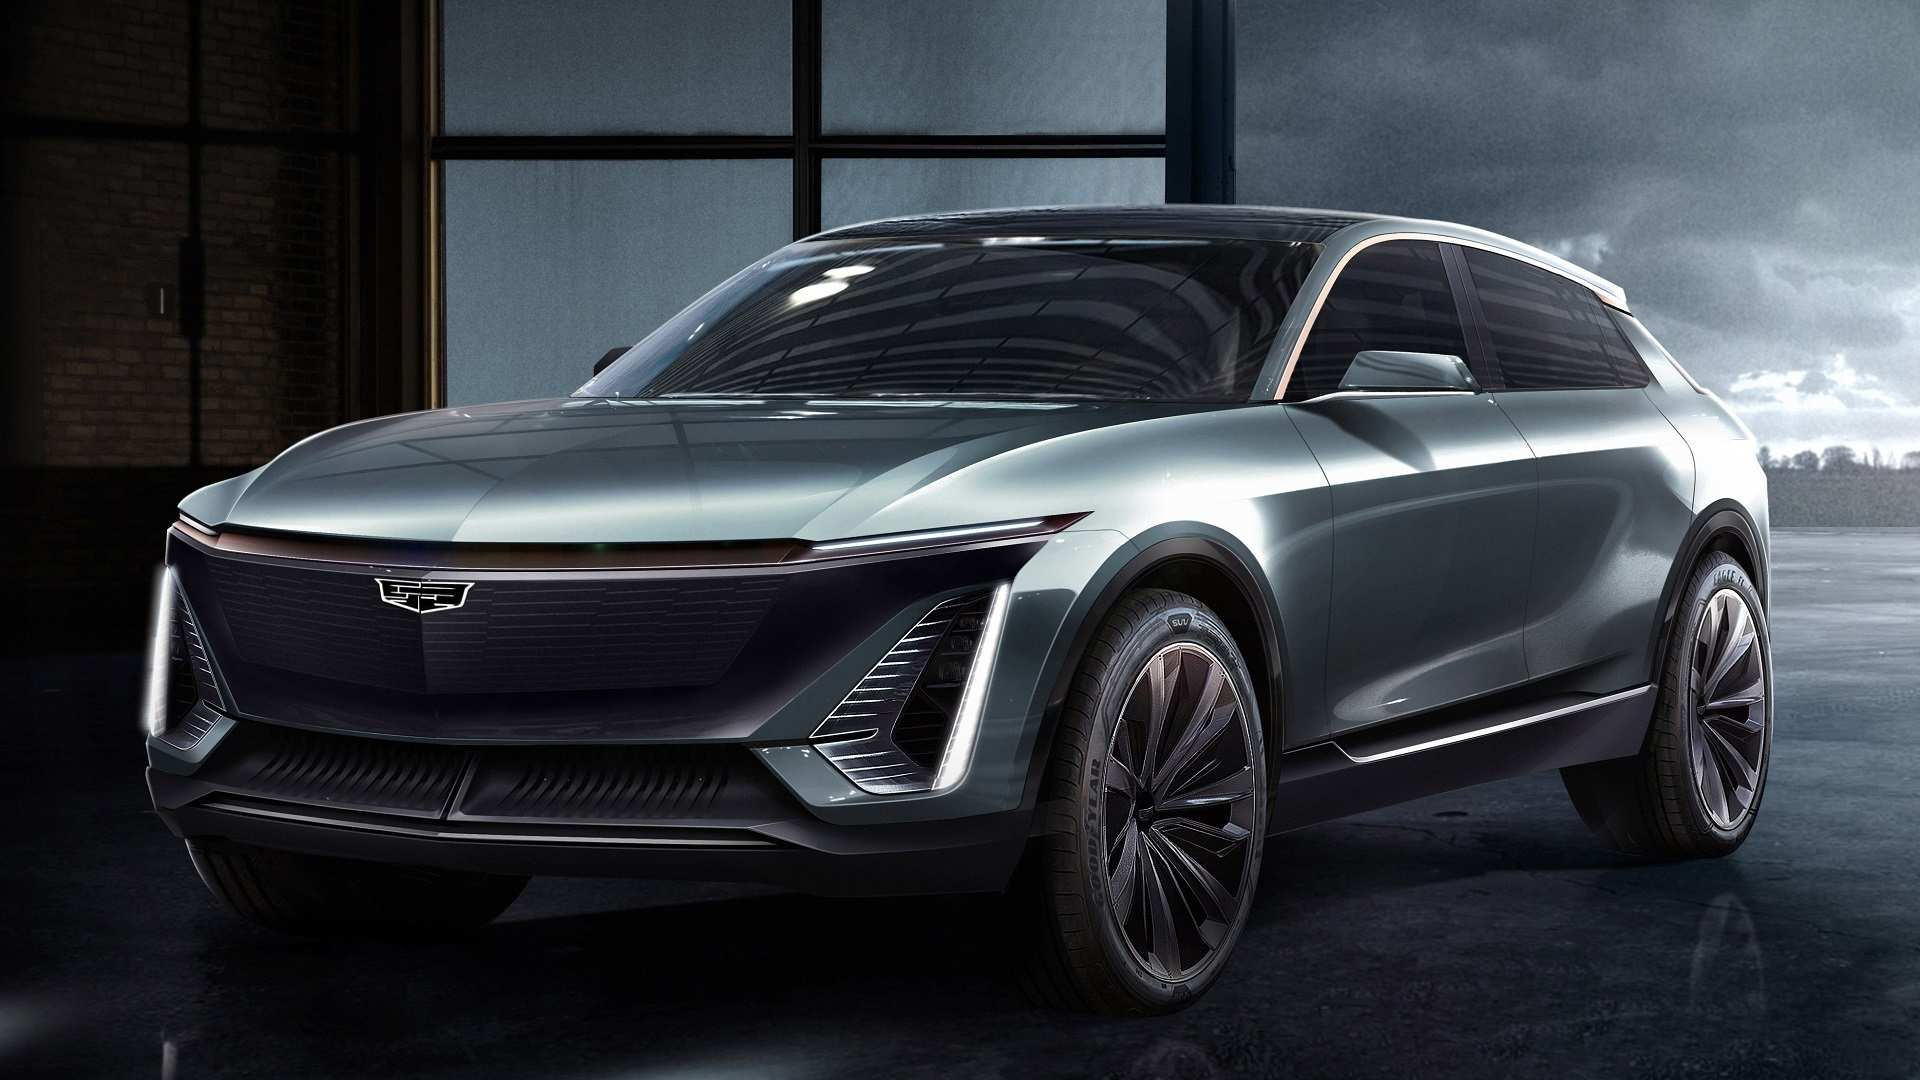 91 A 2019 Cadillac News Review And Release Date